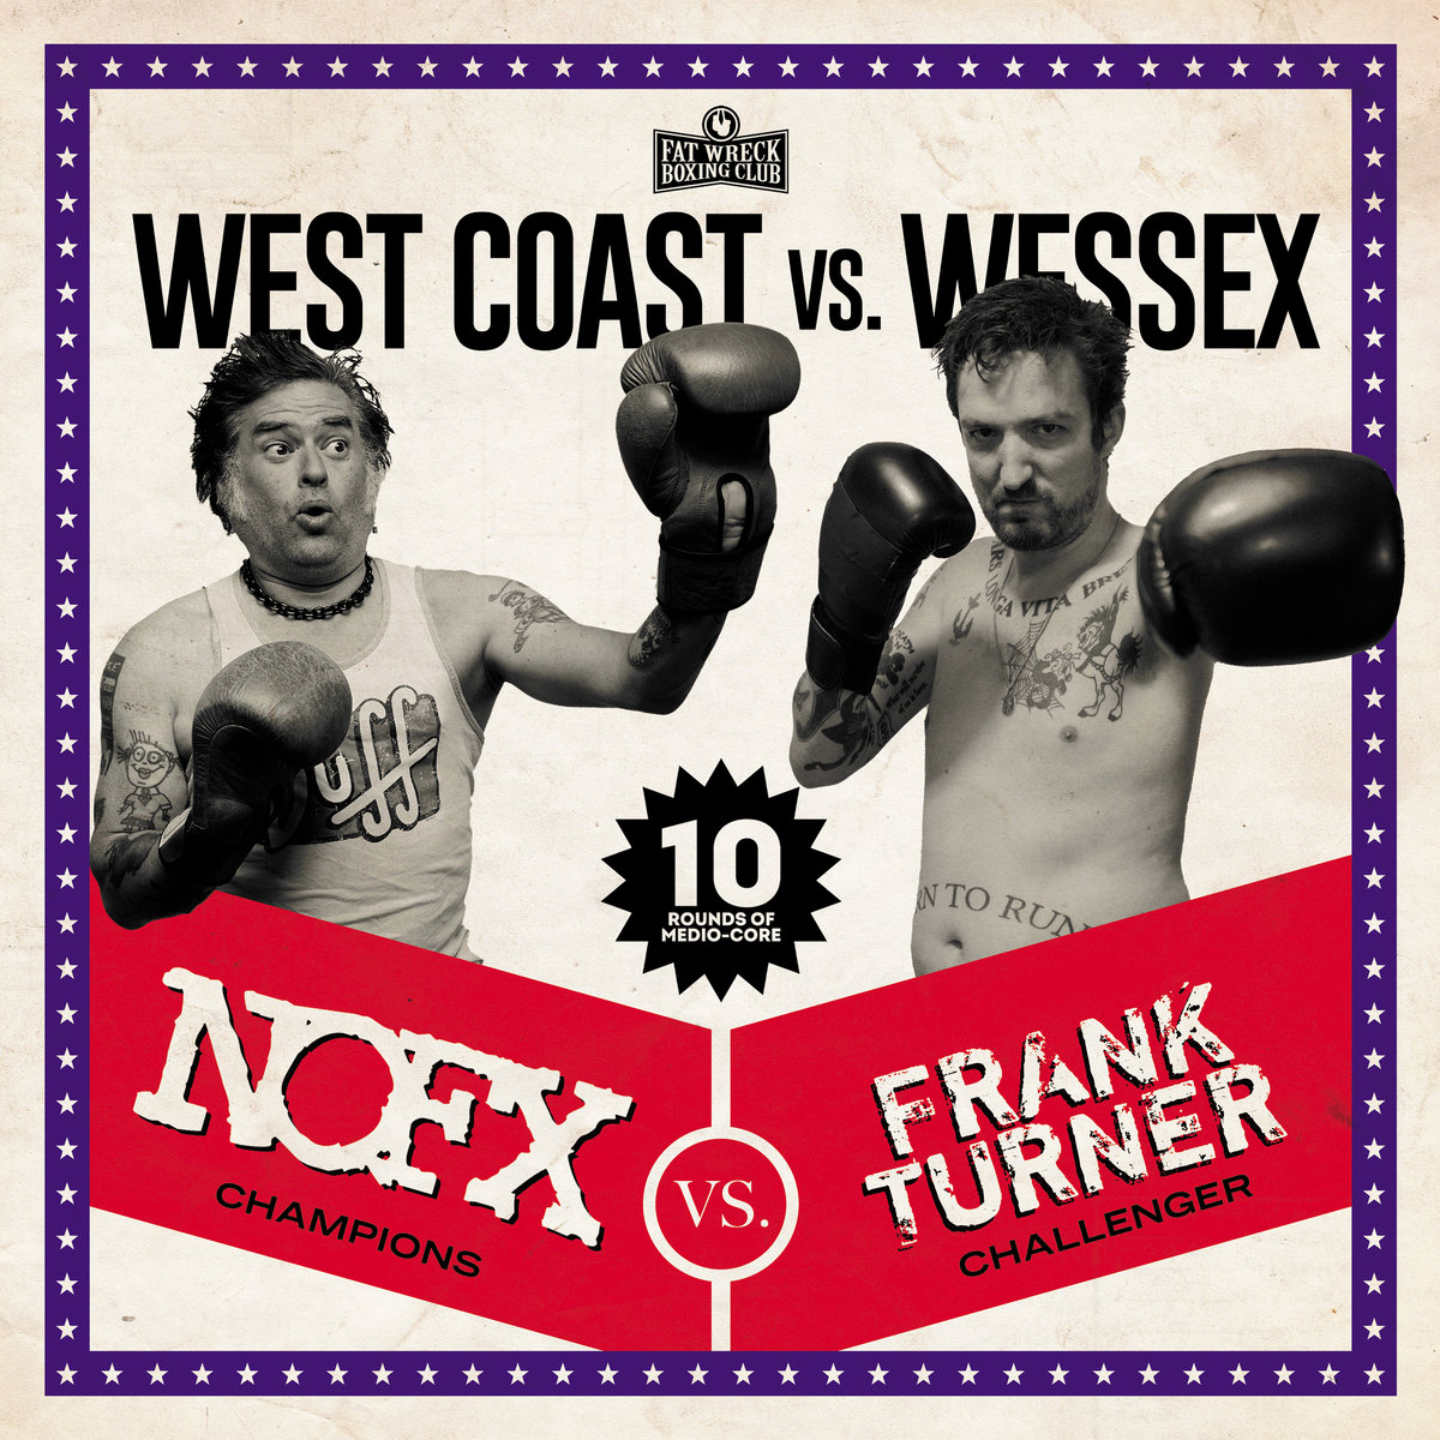 NOFX / FRANK TURNER - West Coast Vs. Wessex (Split) LP